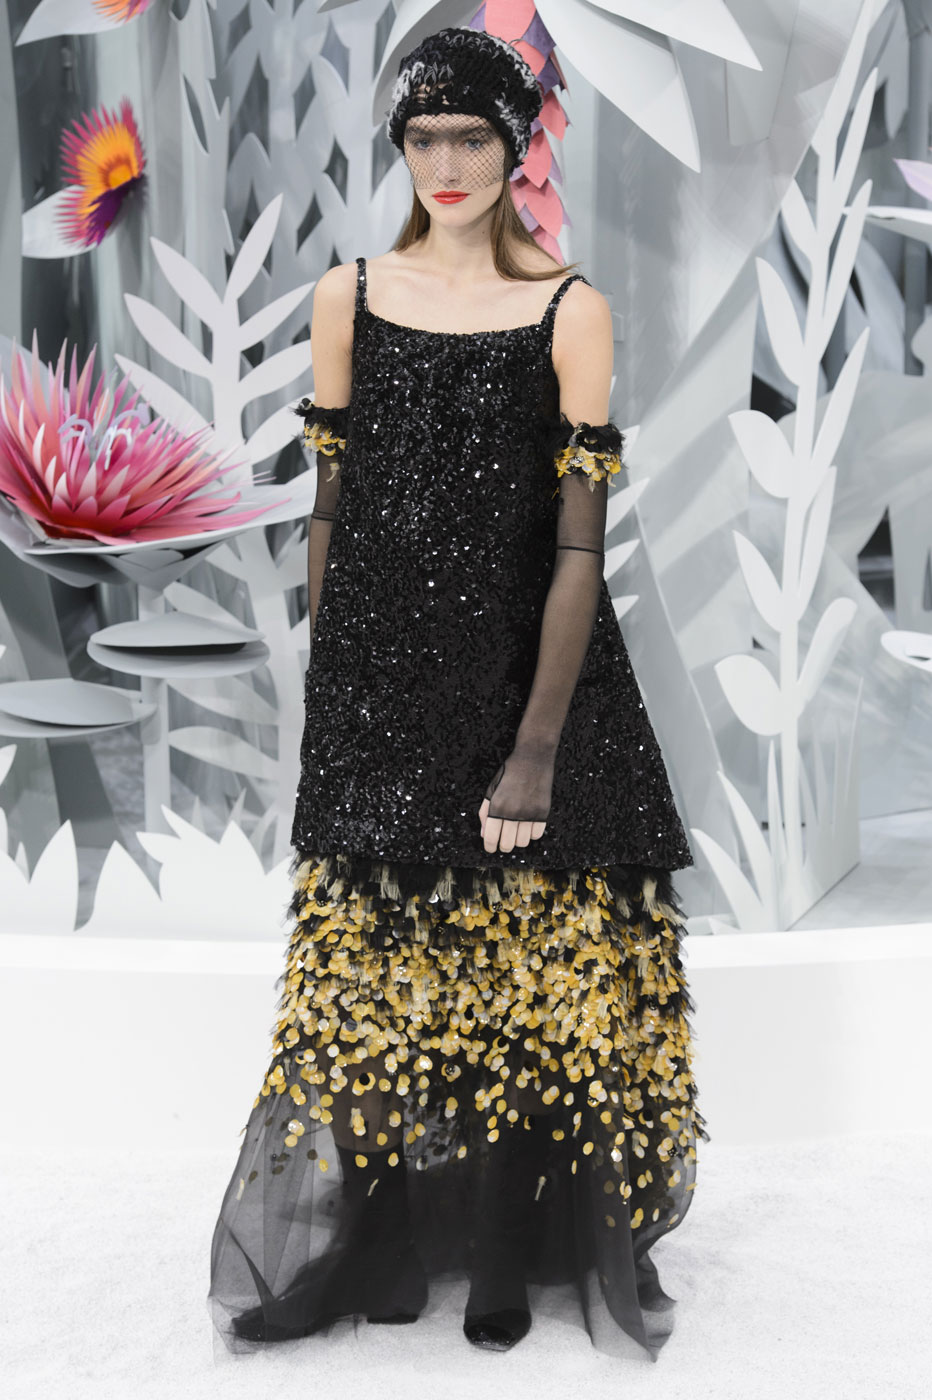 Chanel-fashion-runway-show-haute-couture-paris-spring-summer-2015-the-impression-112